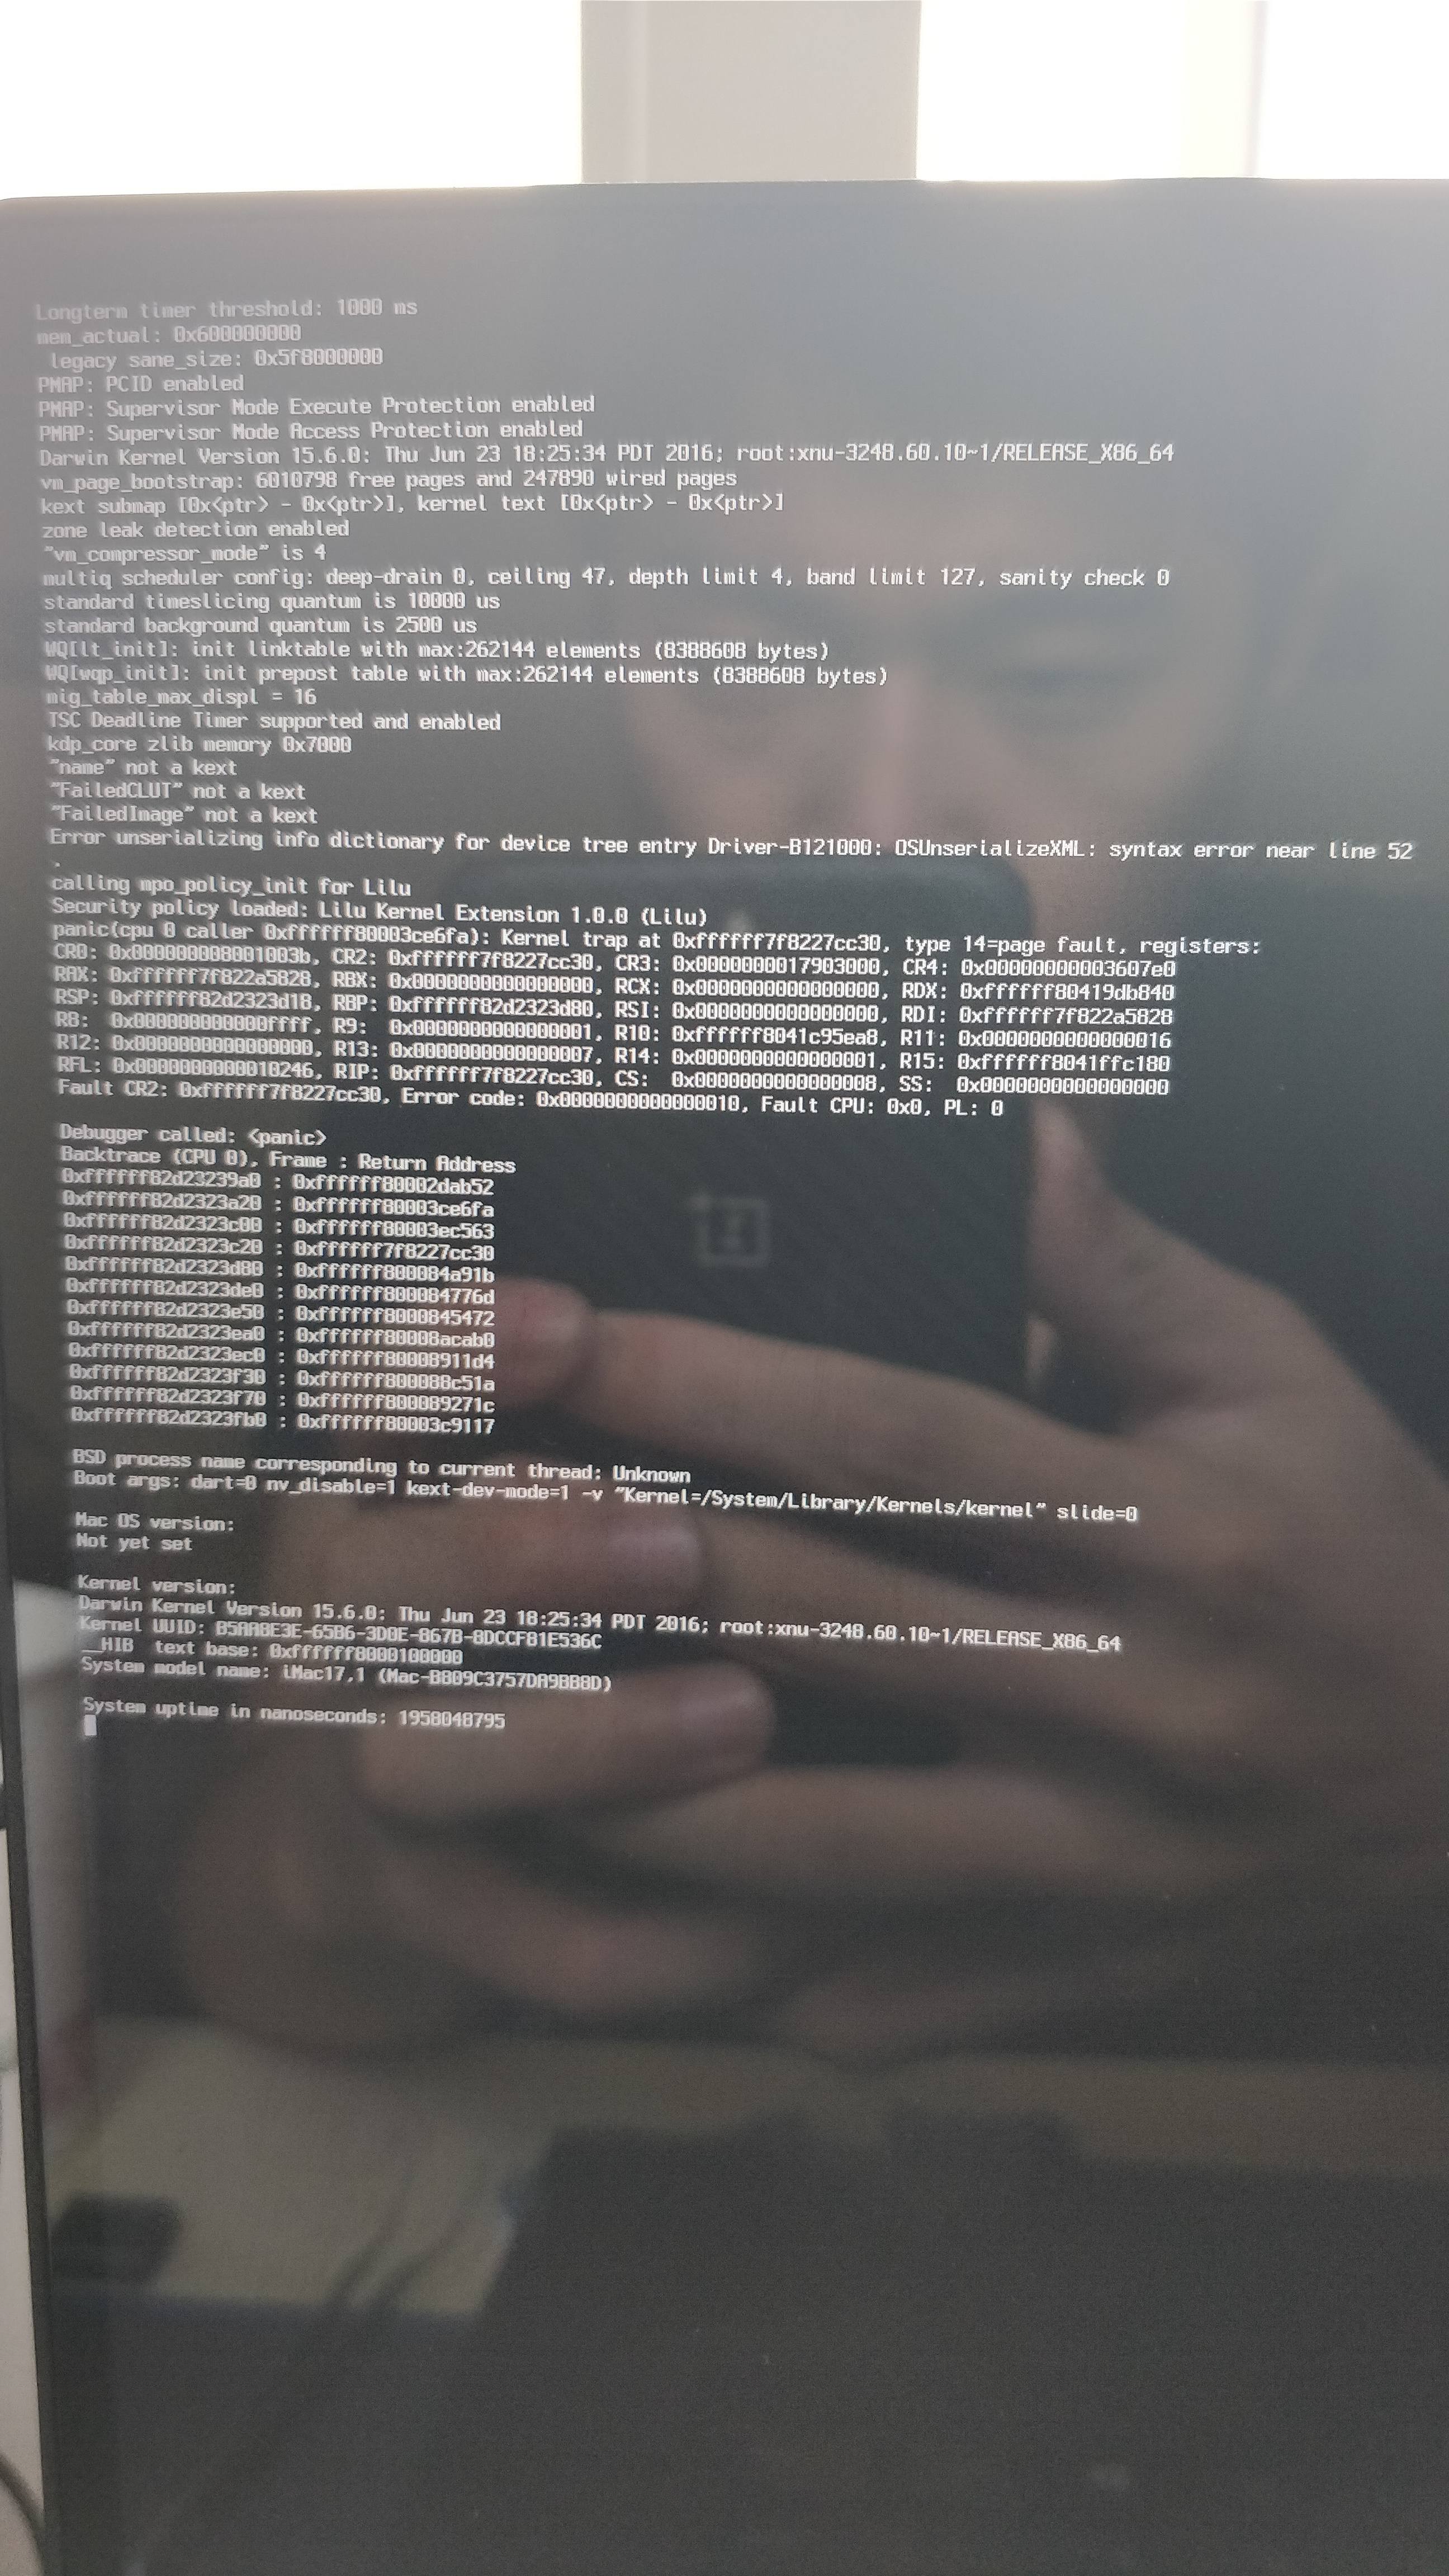 solved] only boot in safe mode after clover update